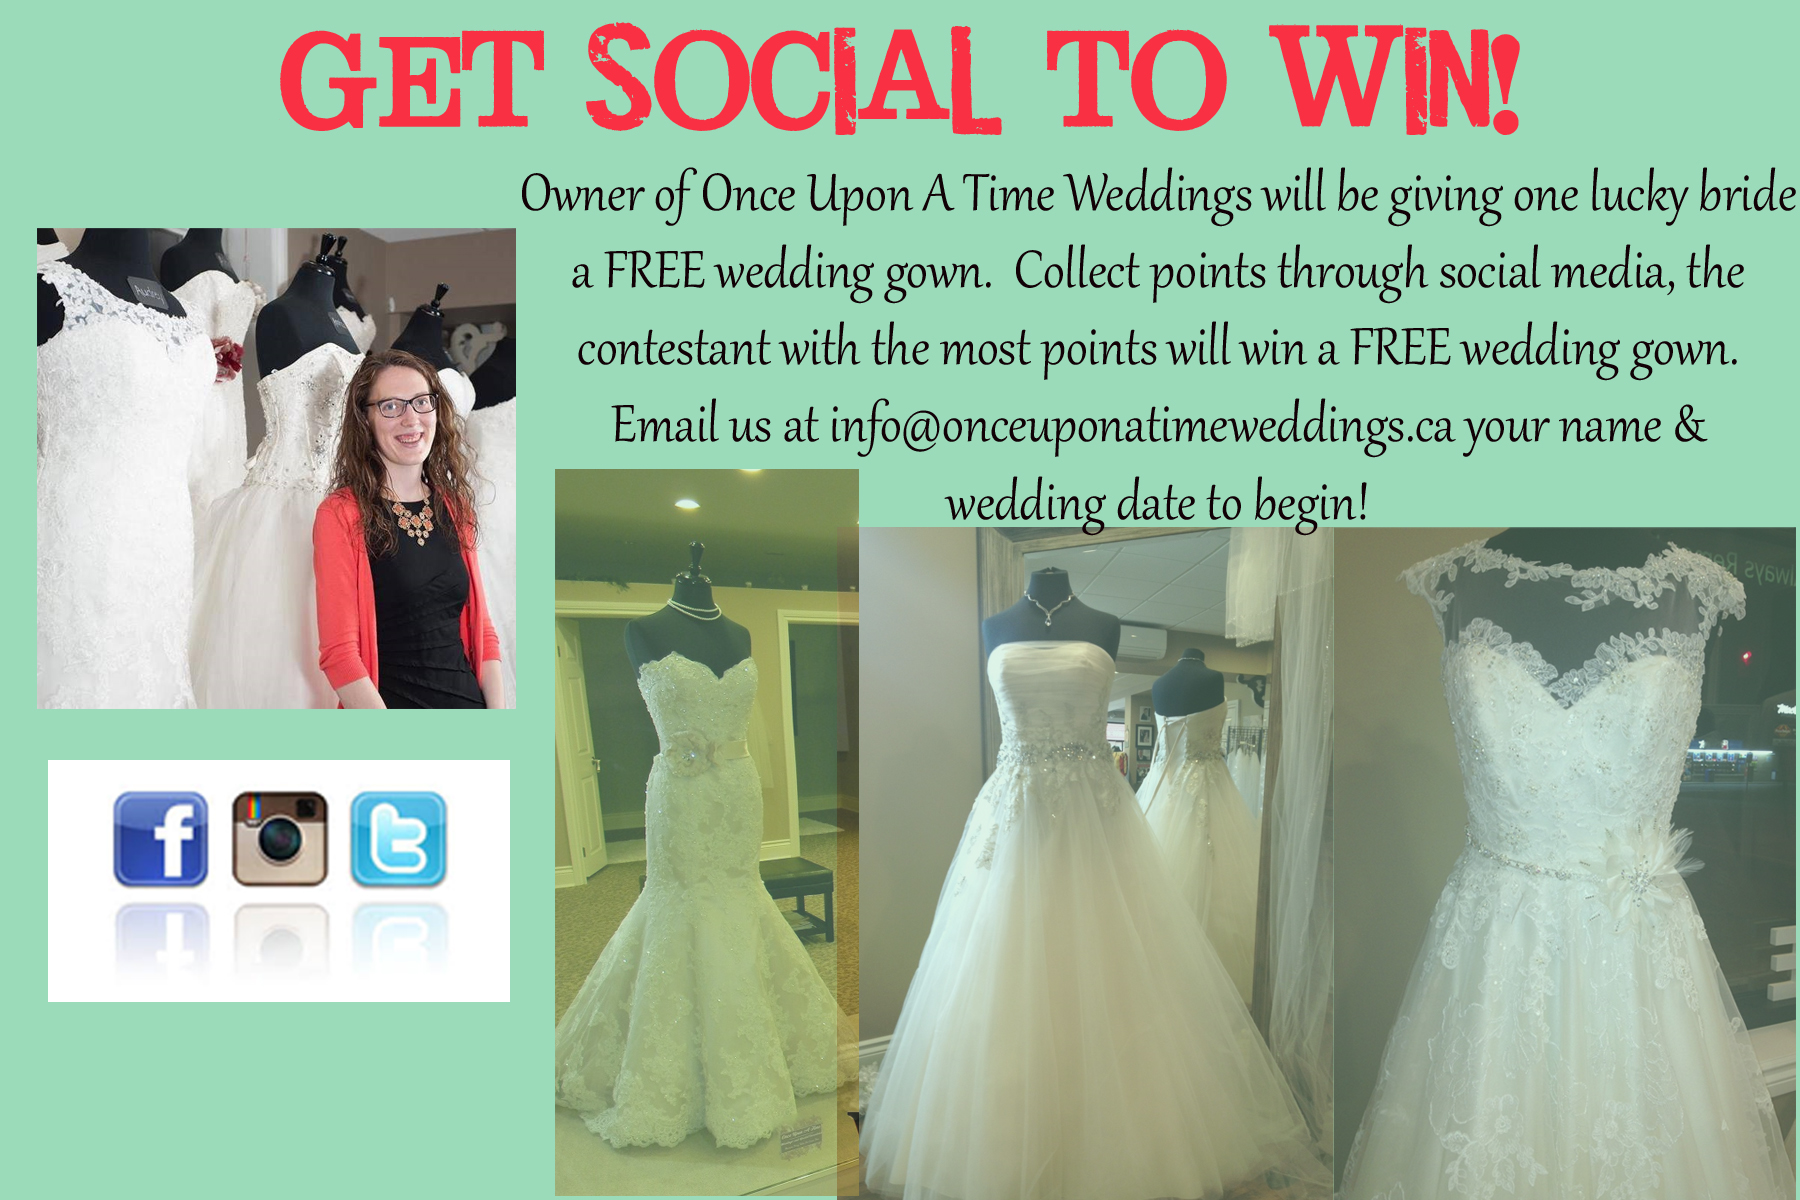 Hey Brides! We're so excited to kick off our Get Social To Win Contest, where one lucky bride will WIN the wedding gown of her choice.    So, how can you participate?! It's easy. The first thingyou need to do is email us at  info@onceuponatimeweddings.ca  your name & wedding date to let us know you're in. This way we can start to calculate your points. Then start earning points! (see below) The bride with the most points will WIN her gown on February 27th.     PS. If you purchased your wedding gown between September 1st, 2014 and now at our store, you can still participate :)    Stay tuned later this week for a full listing of which bridal shows we'll be attending so you can find us, take pics & earn even more POINTS!     * Like us on facebook, follow us on Instagram or twitter - 50 points each      * Text us your full name to 519.319.9441 – 75 points       * Book a bridal appointment   – 100 points      * Take a pic in our booth at a bridal show, tag us in it on Instagram, facebook, or twitter – 50 points      * Get a friend to like that picture – 1 point per like      * Share a pic of one of our gowns in the fashion show & tag us in it on Instagram, facebook or twitter – 25 points per picture      * Get likes on one of those photos – 1 point per like      * Email us at      info@onceuponatimeweddings.ca      to tell us you are in the competition -50 points      * Purchase your wedding gown from us – 125 points      * Purchase your accessories from us – 50 points      Competition will run until February 27th, 2015.         Standard text rates apply.   Winner determined by total number of points & will be announced on facebook & instagram. If winning bride has purchased gown from us after September 1st, 2014 then a full refund will be given to the bride.   All decisions regarding winner of the contest by Once Upon A Time Weddings will be final. Bonus points may be awarded through the contest so watch our facebook & Instagram for announcements!